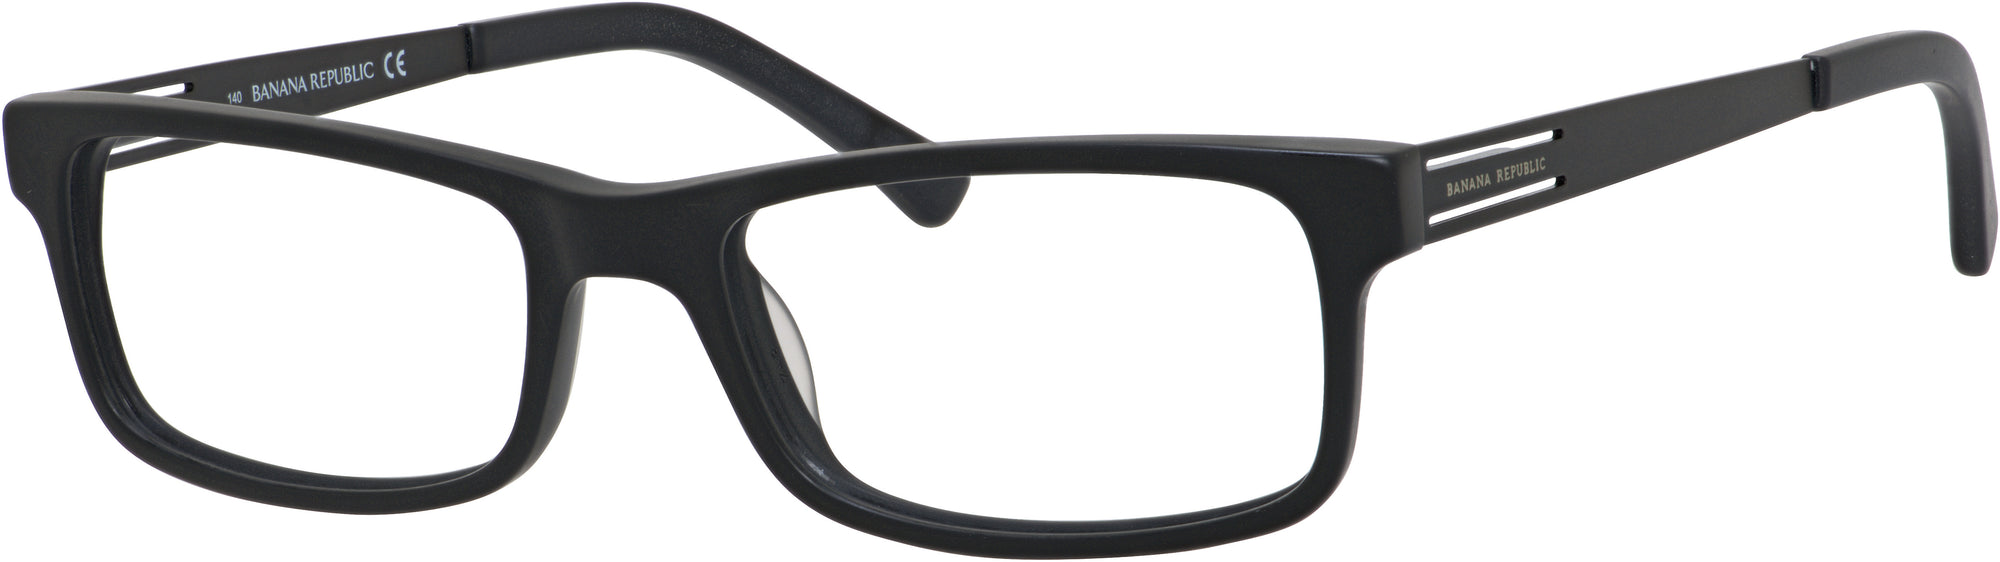 Banana Republic Boone Rectangular Sunglasses 0003-0003  Matte Black (00 Demo Lens)